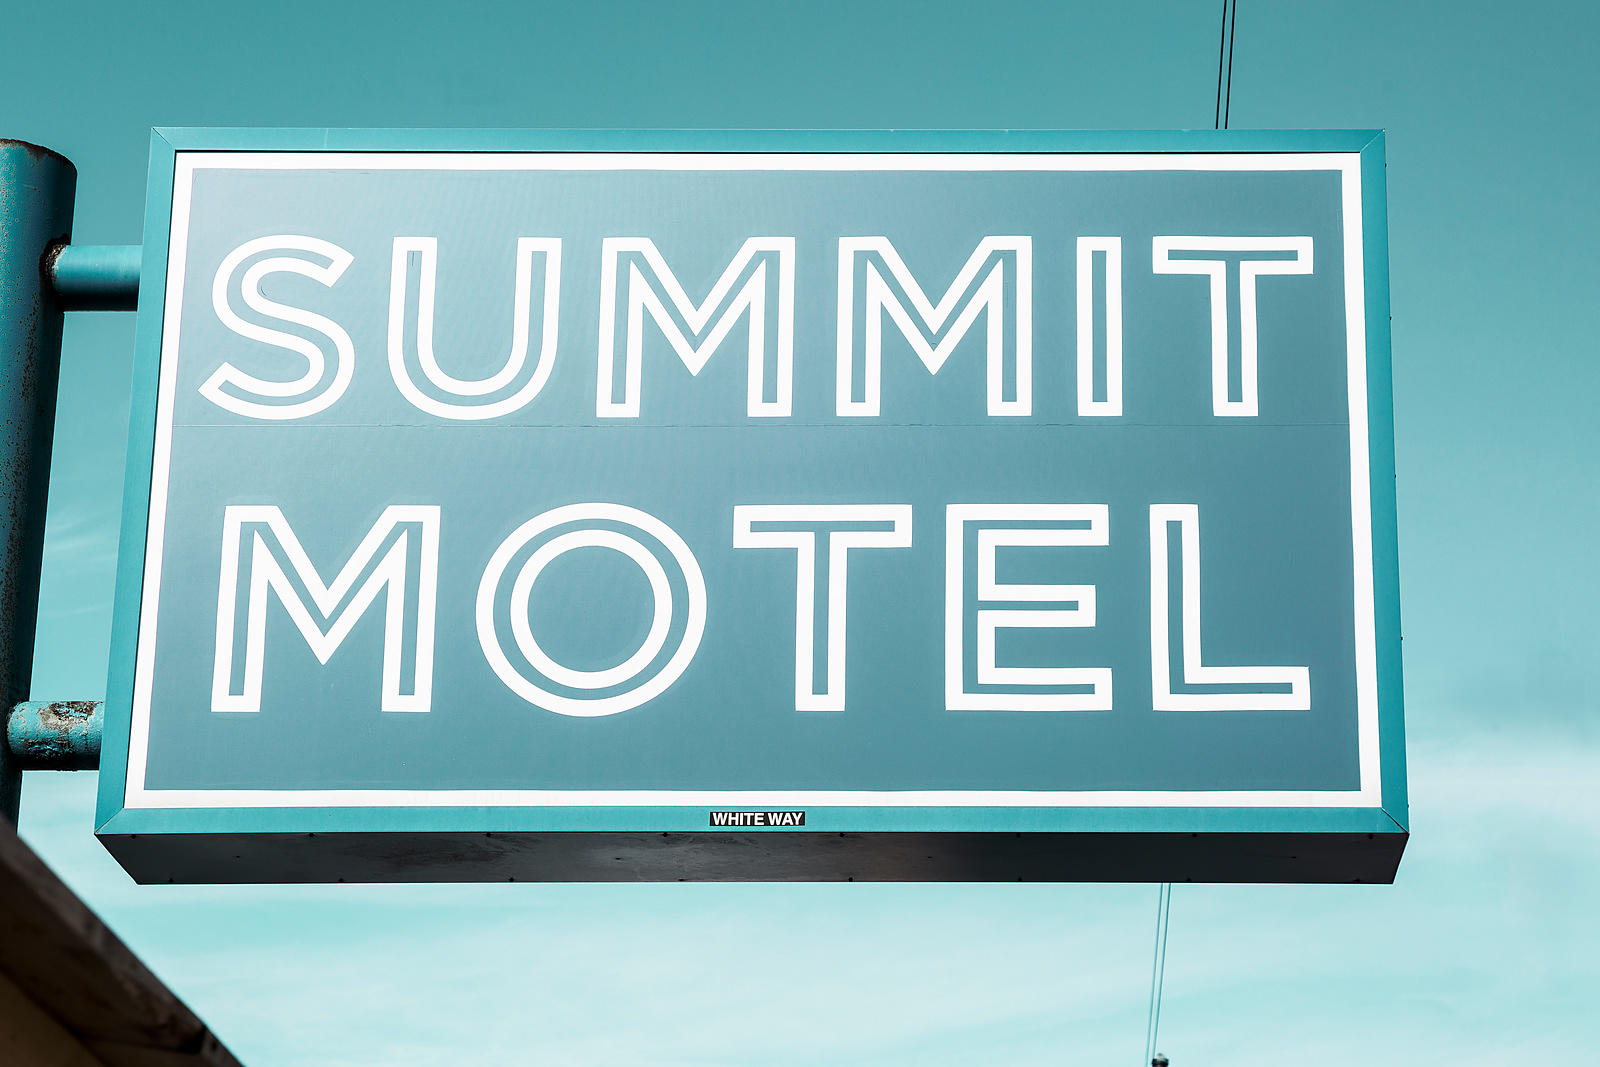 Summit Motel